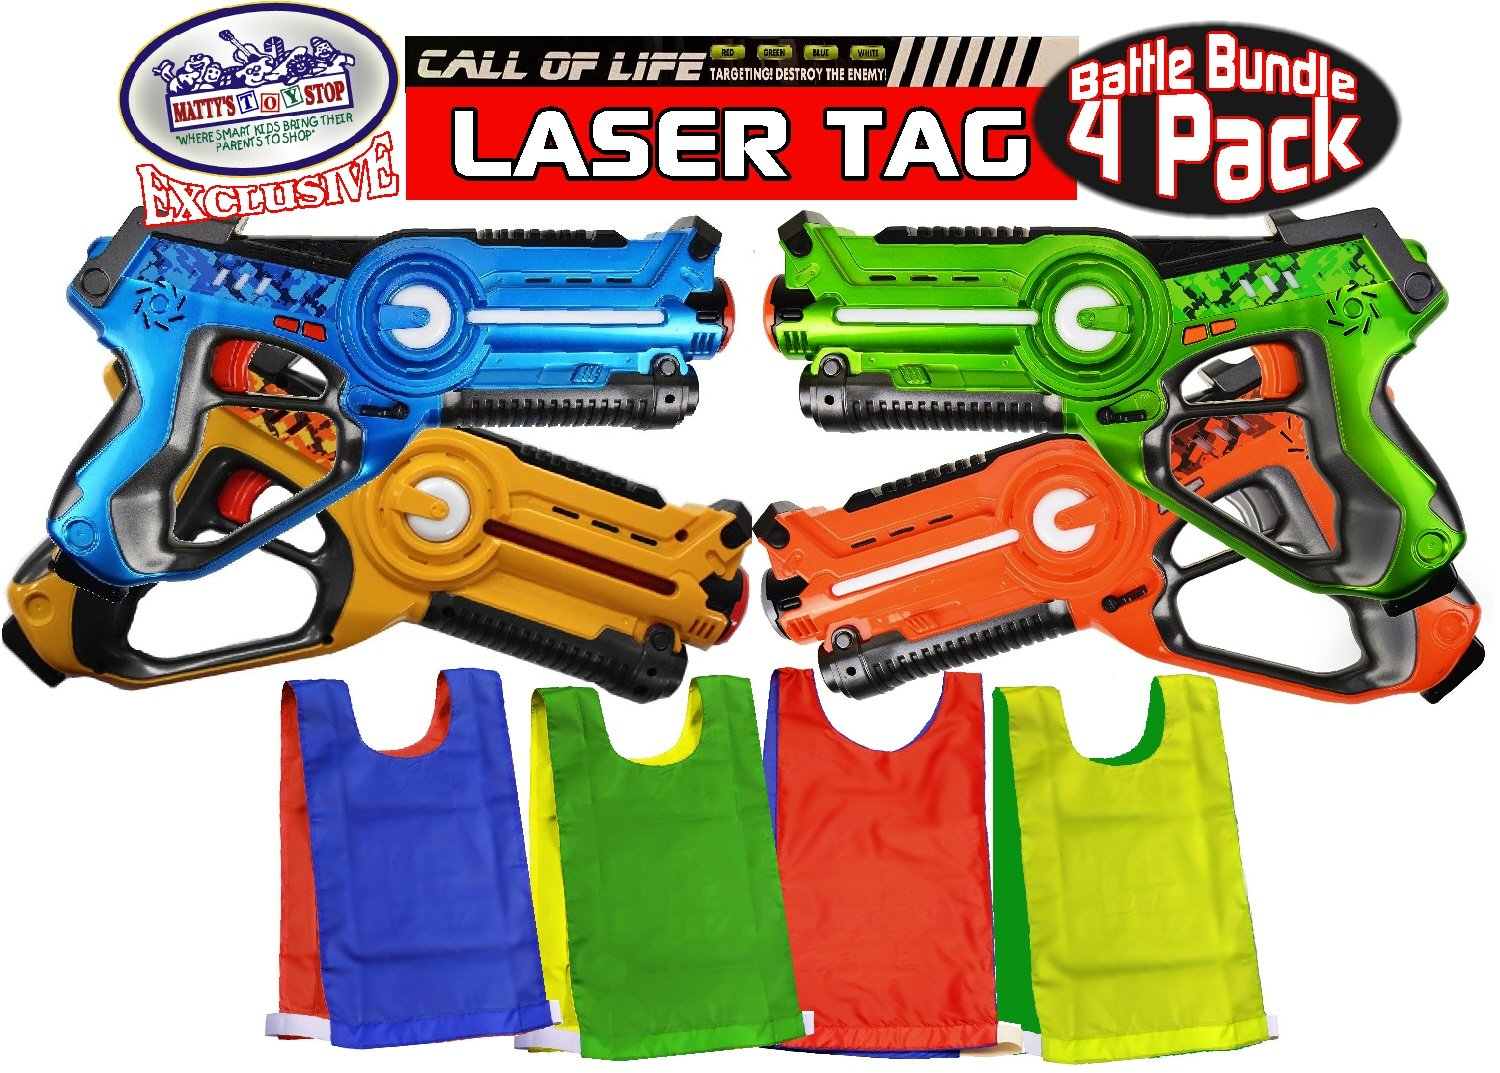 Matty's Toy Stop ''Call of Life'' Infrared (IR) Tag Blasters for Kids Red, Green, Blue & Yellow Deluxe Gift Set Battle Bundle with 4 Reversible Team Vests - 4 Pack